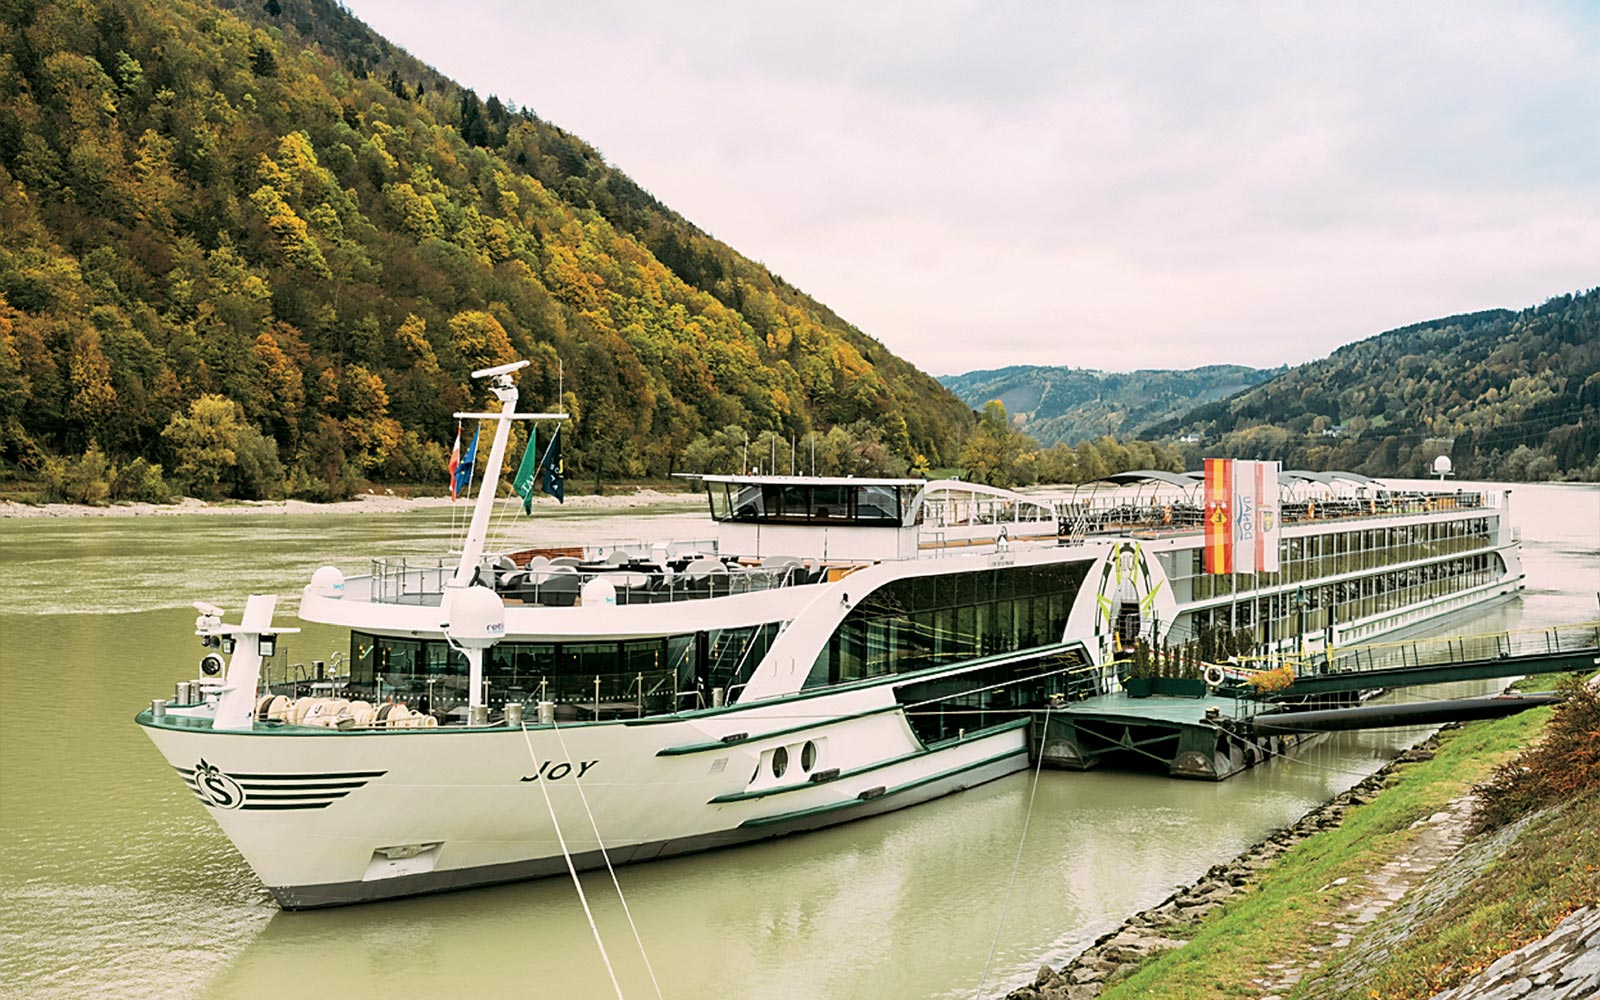 Tauck's JOY River Cruise vessel